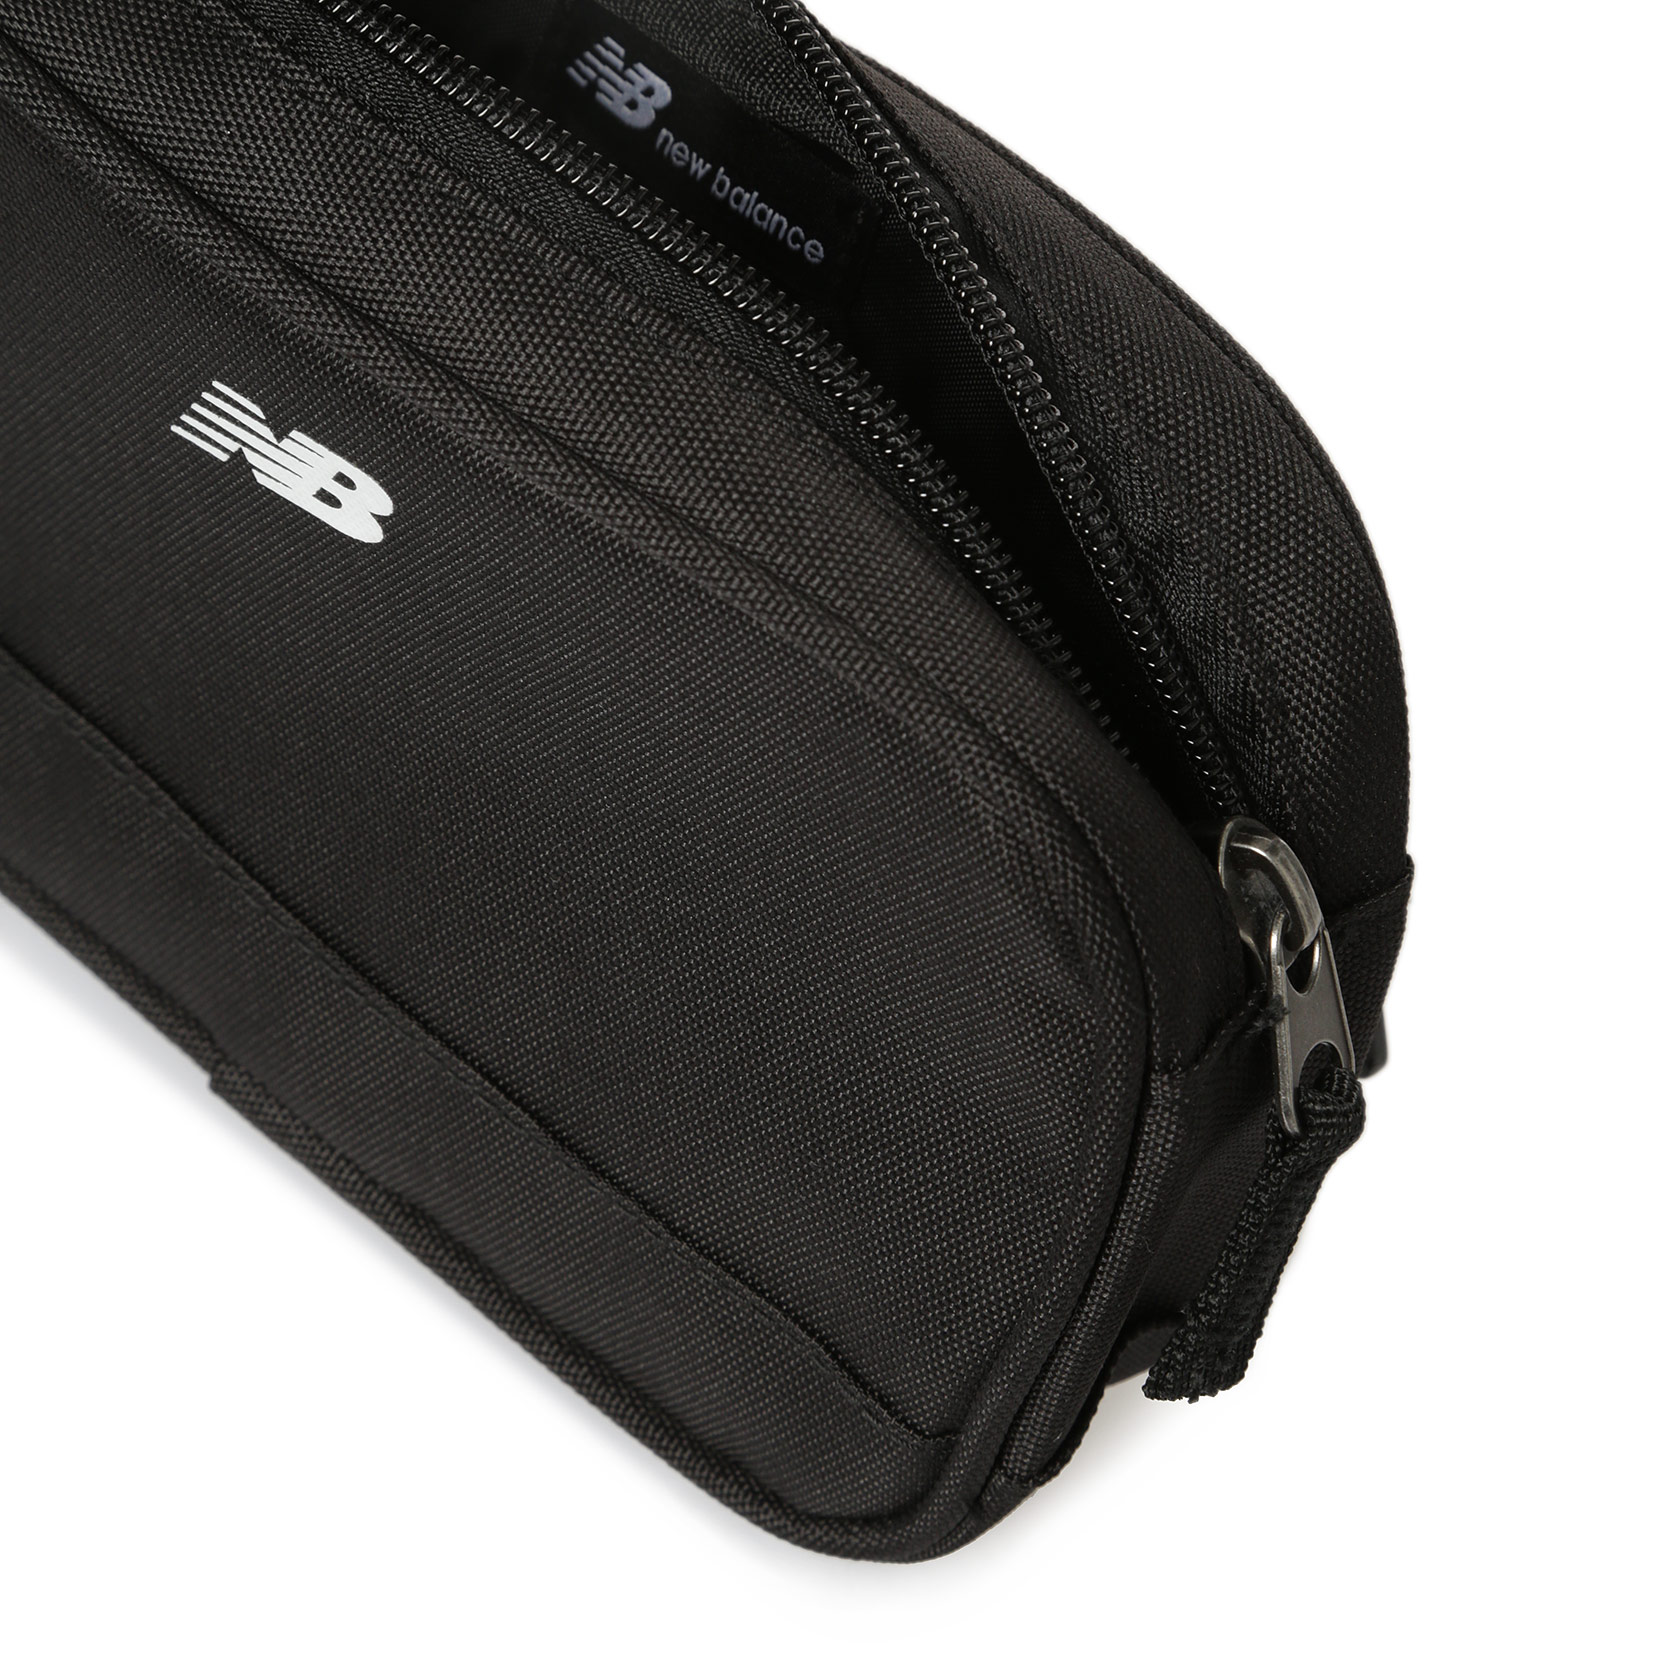 Поясная сумка Metro Waist Pack LAB91024BK | New Balance